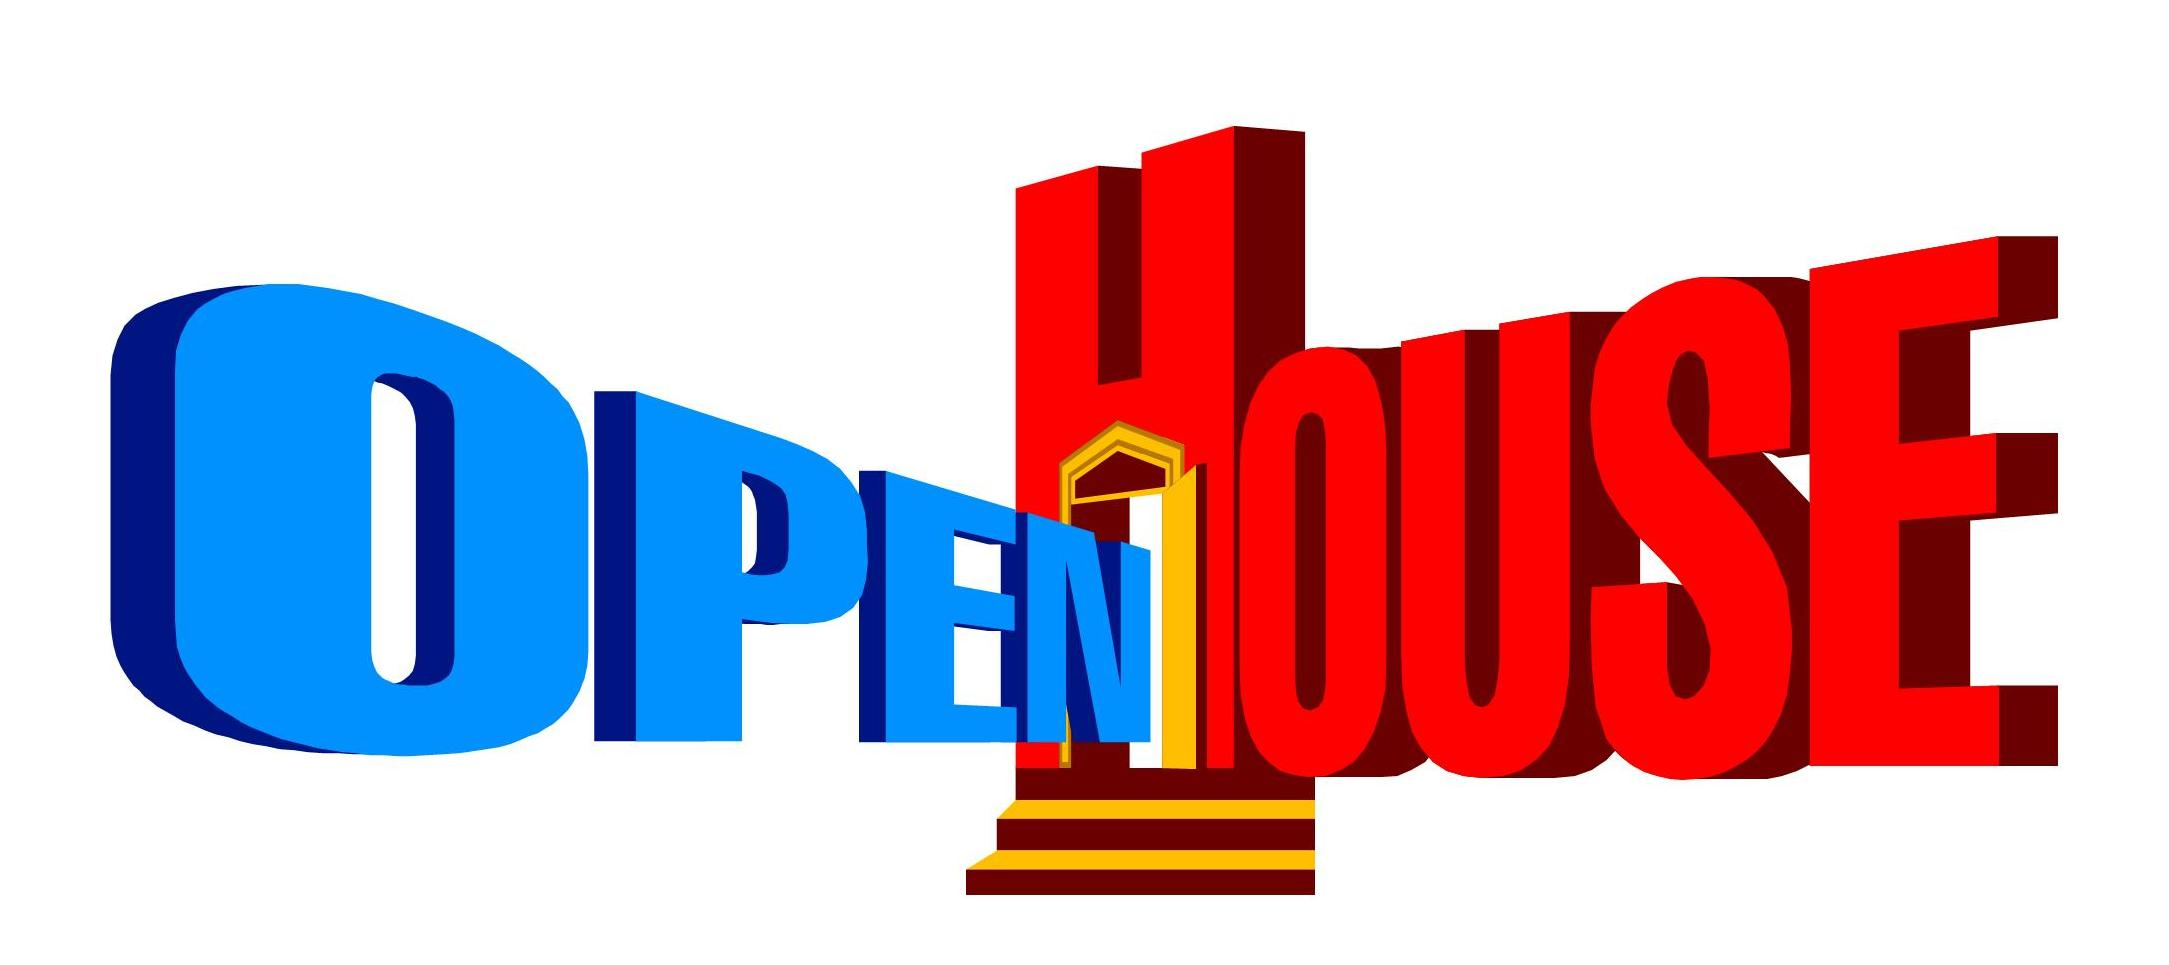 School open house clipart clipart suggest for House open